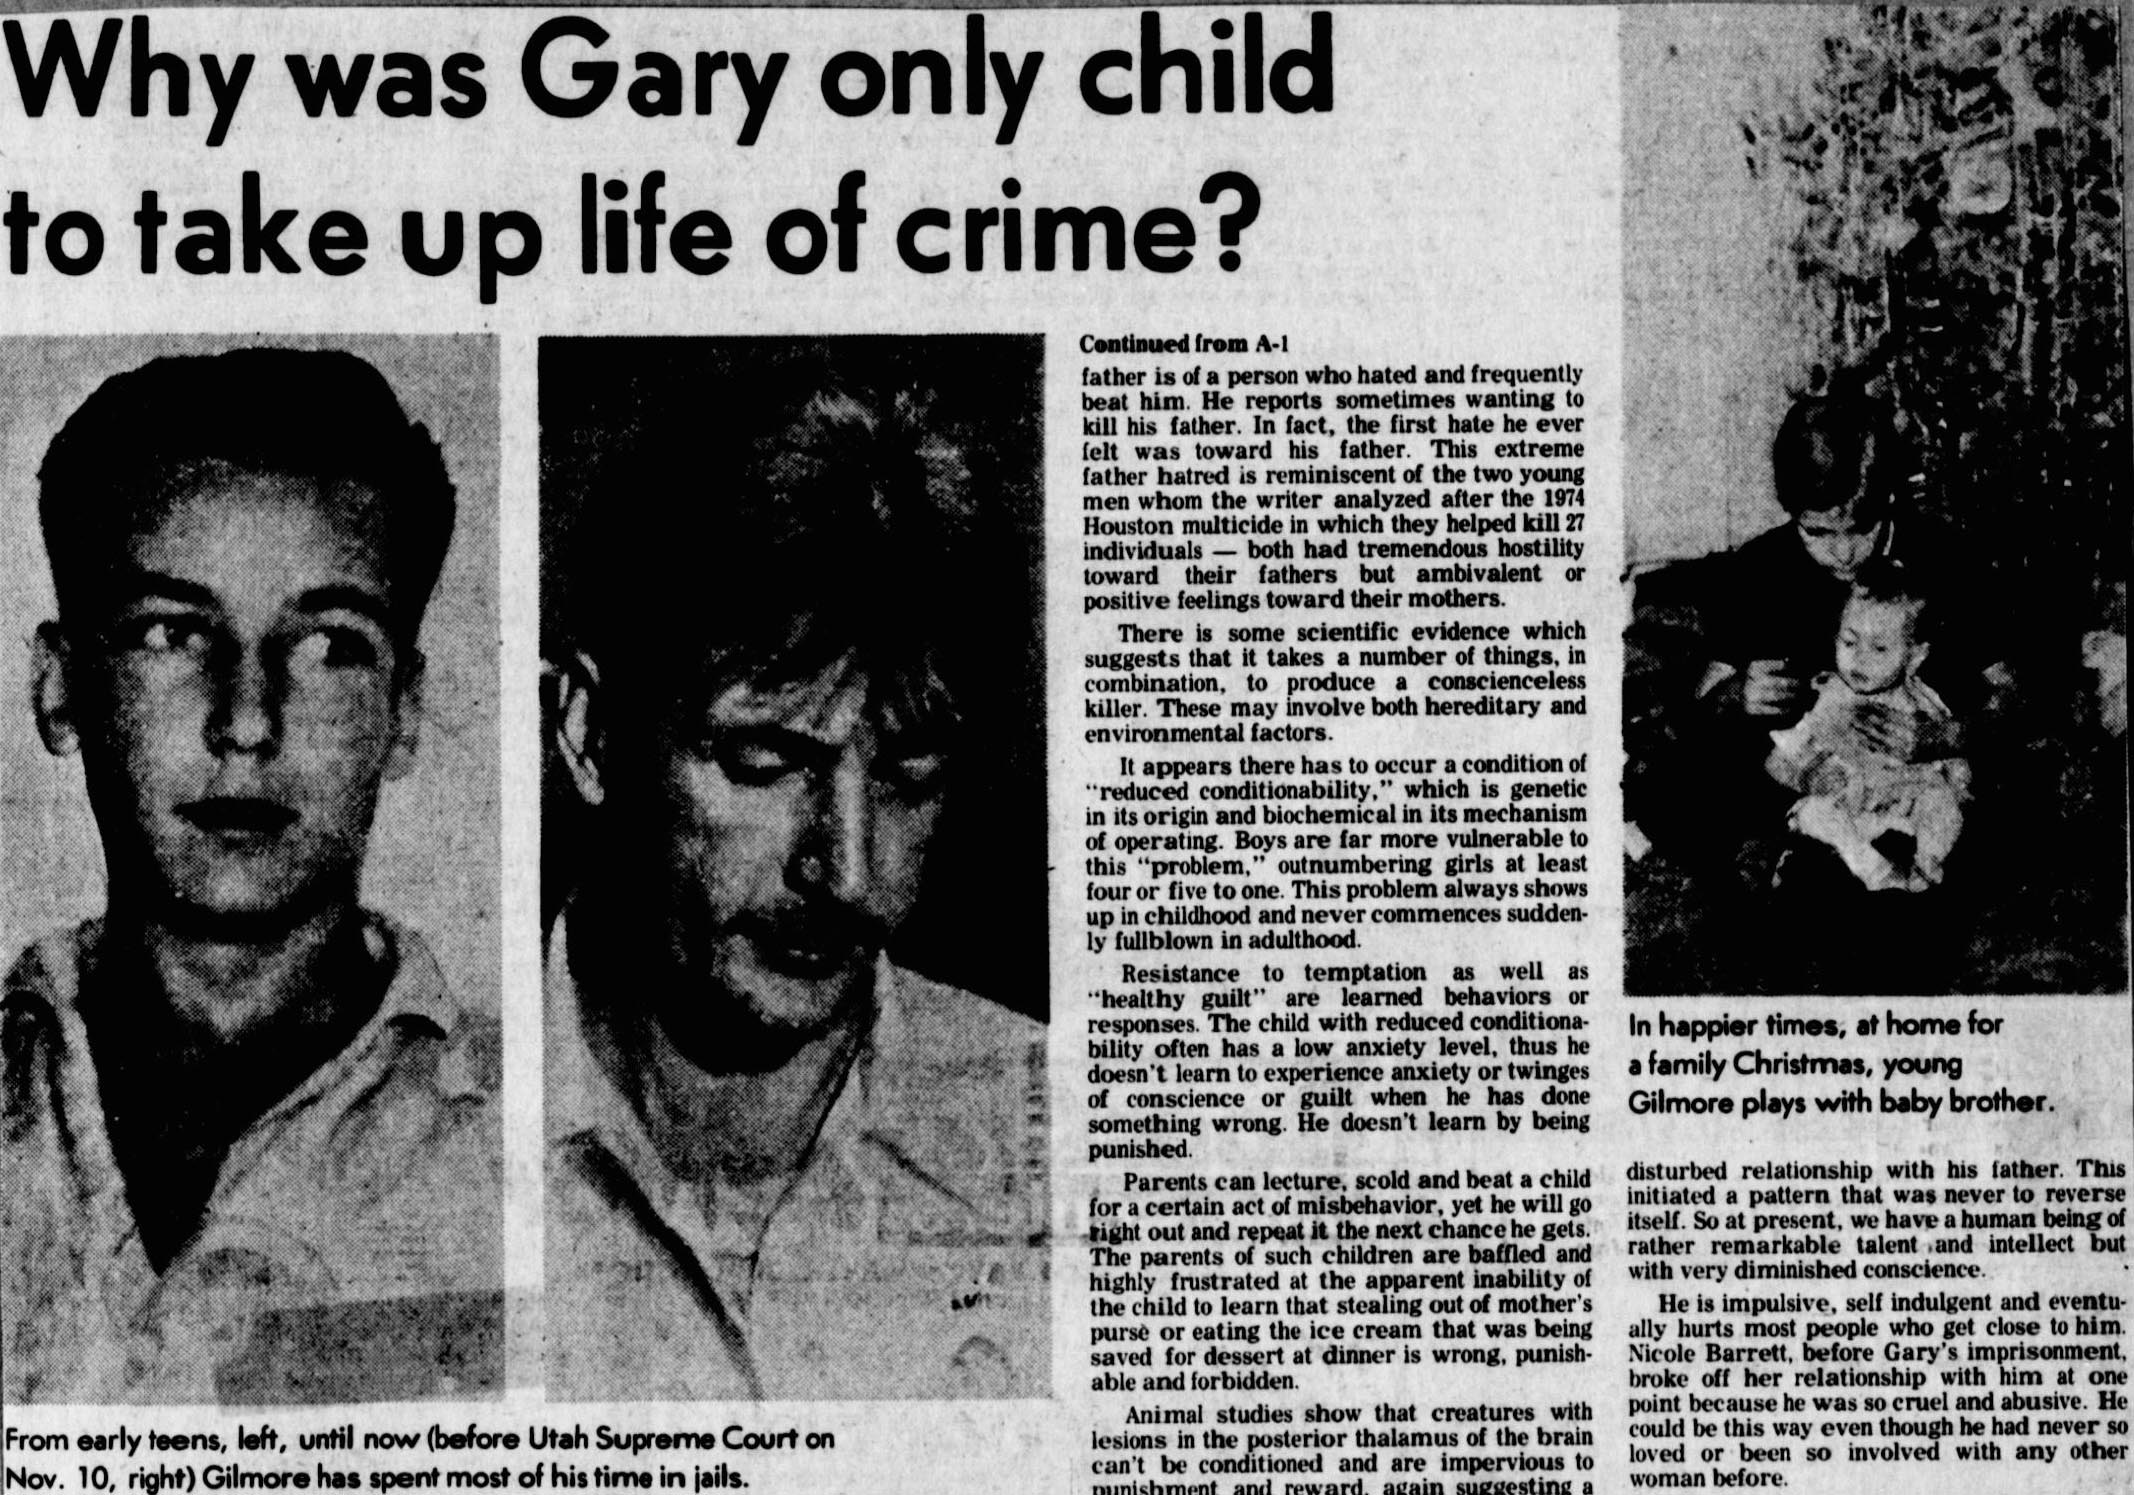 a literary analysis of antidisestablishmentarism number one my brother gary gilmore and winter dream